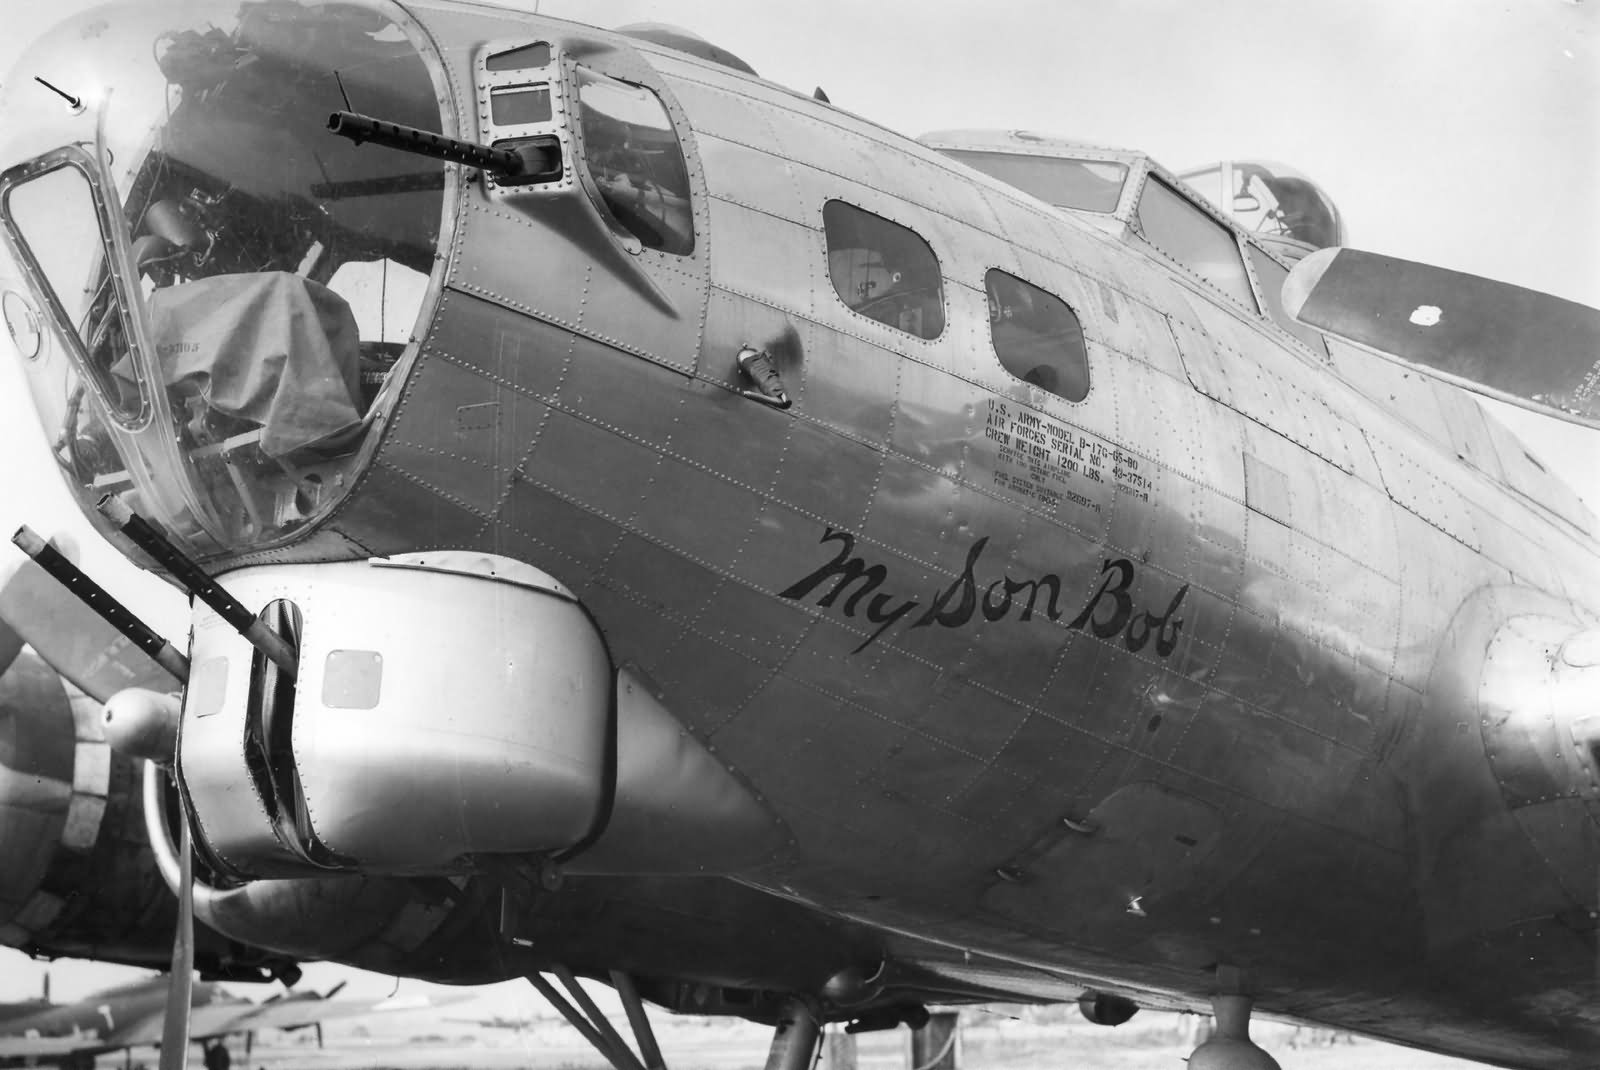 B 17G Nose Art My son bob 381 Bomb Group